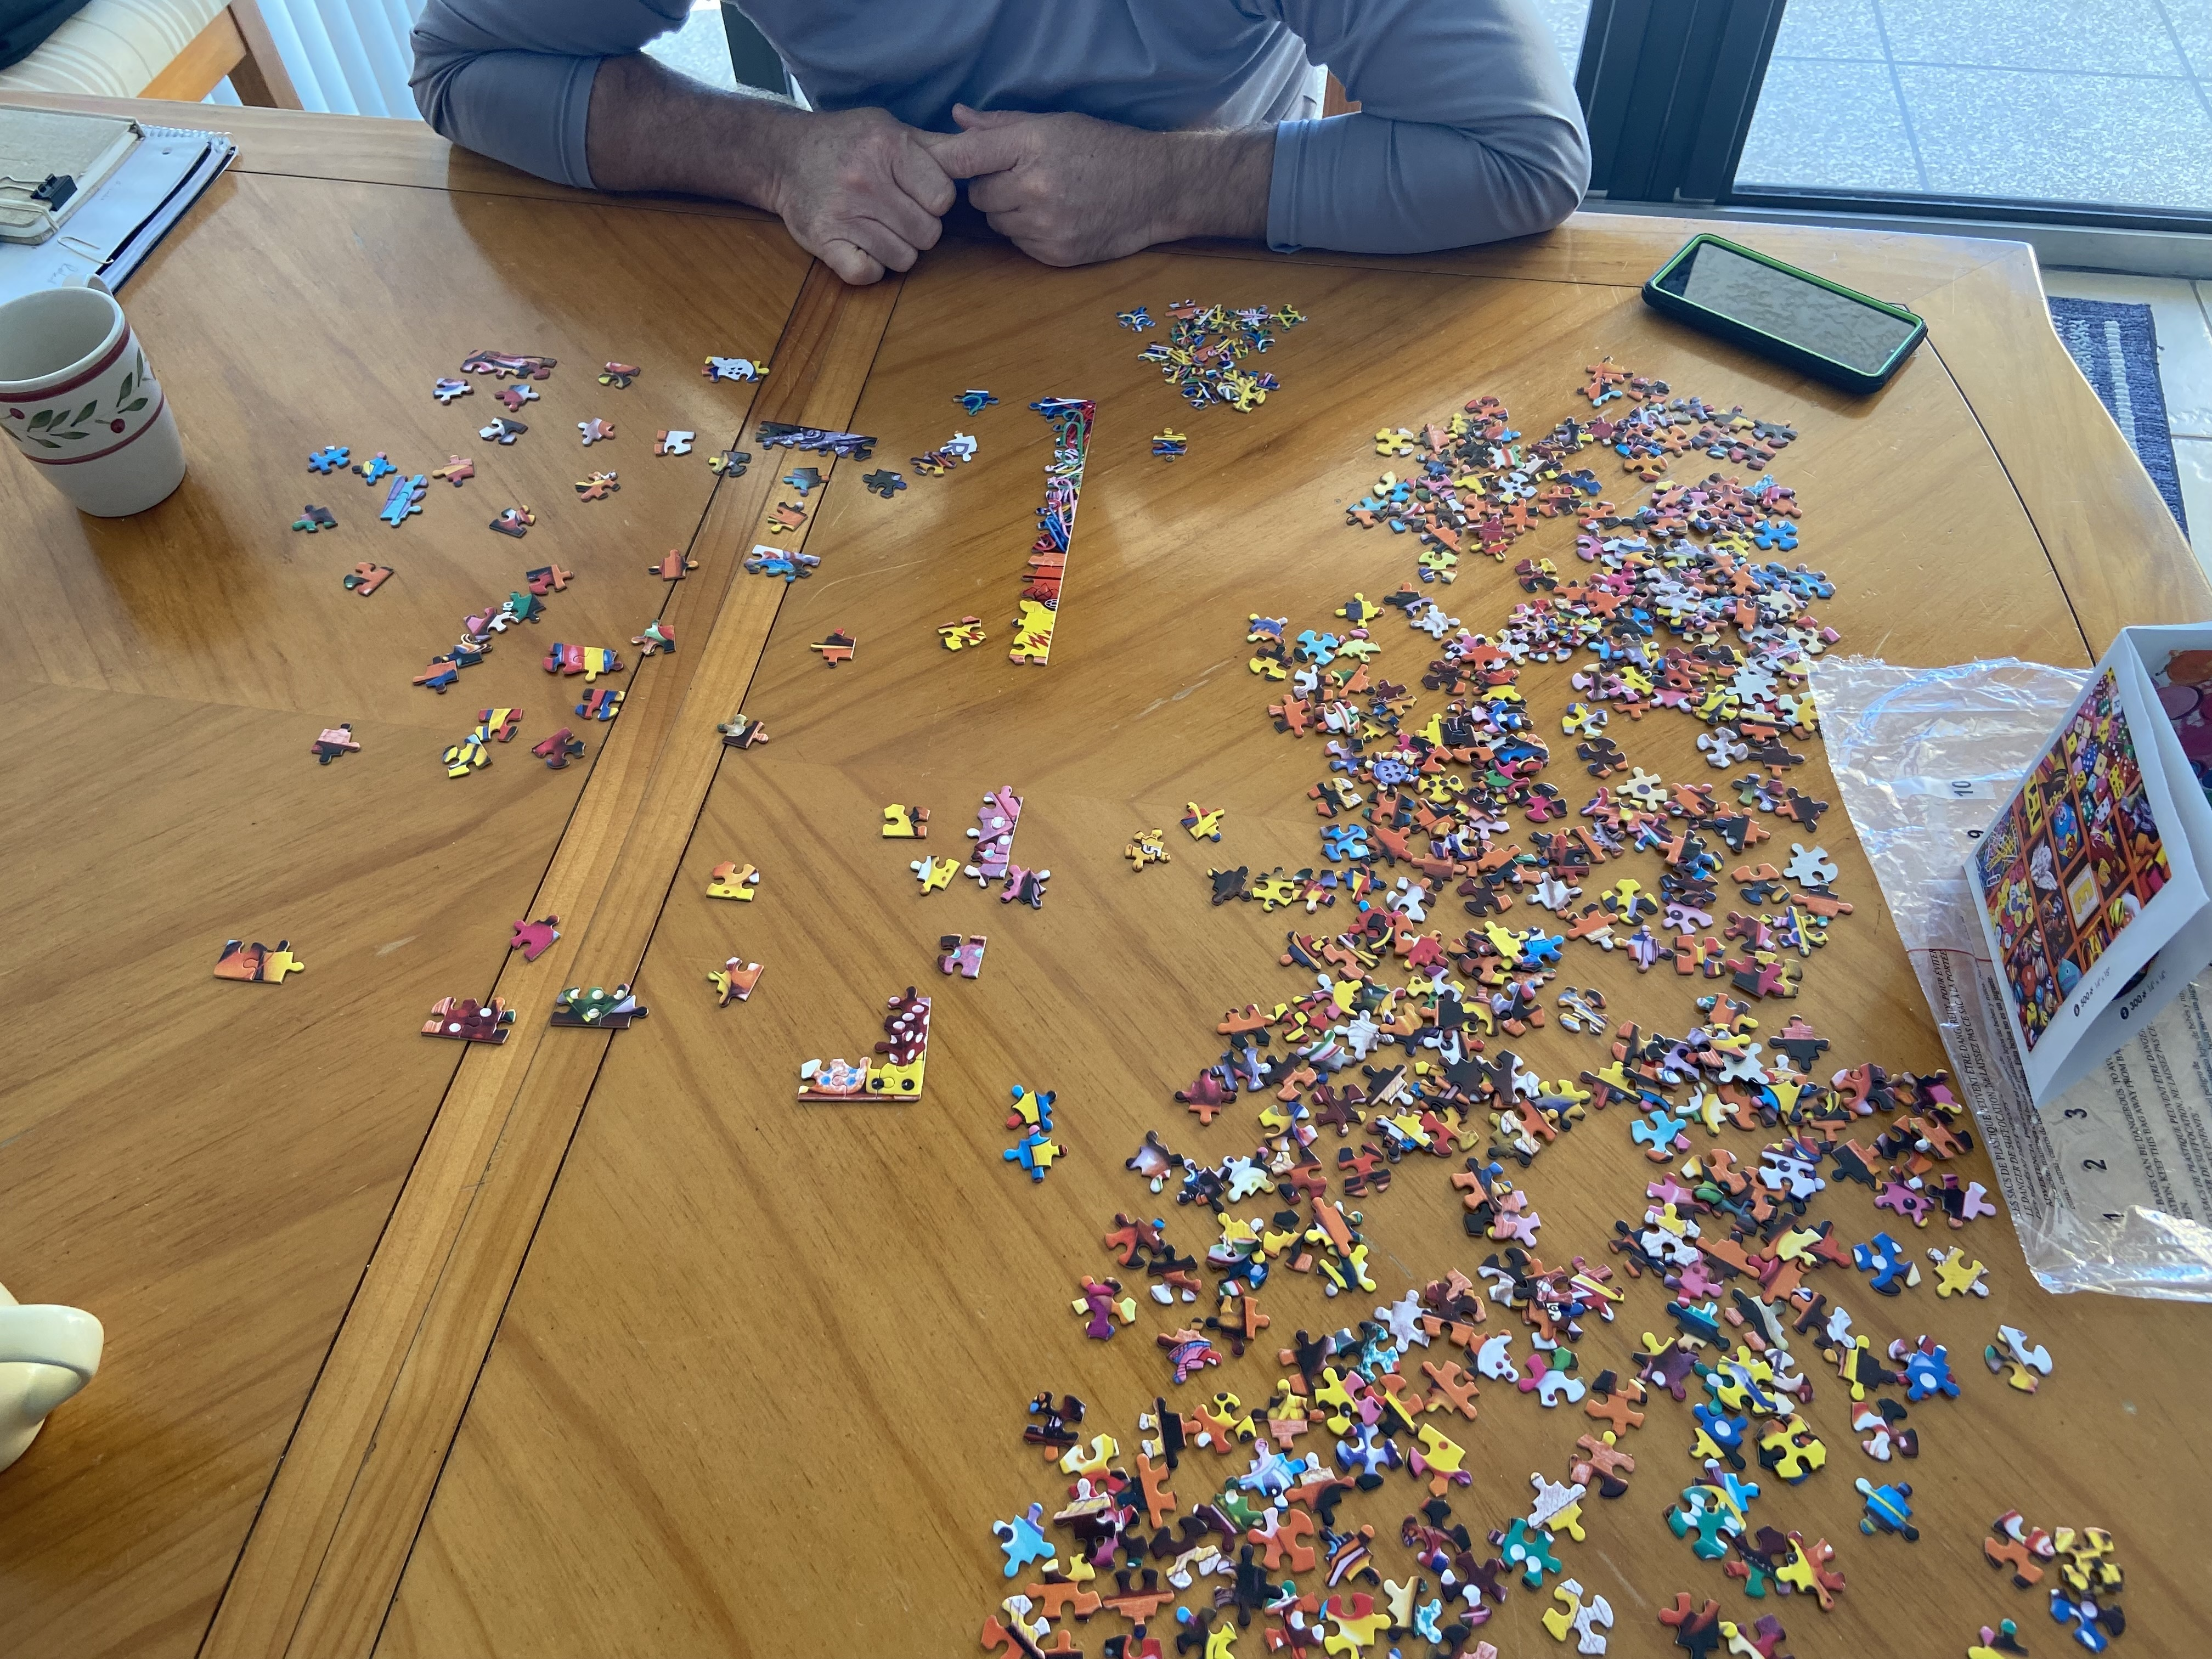 An image of someone putting together a puzzle